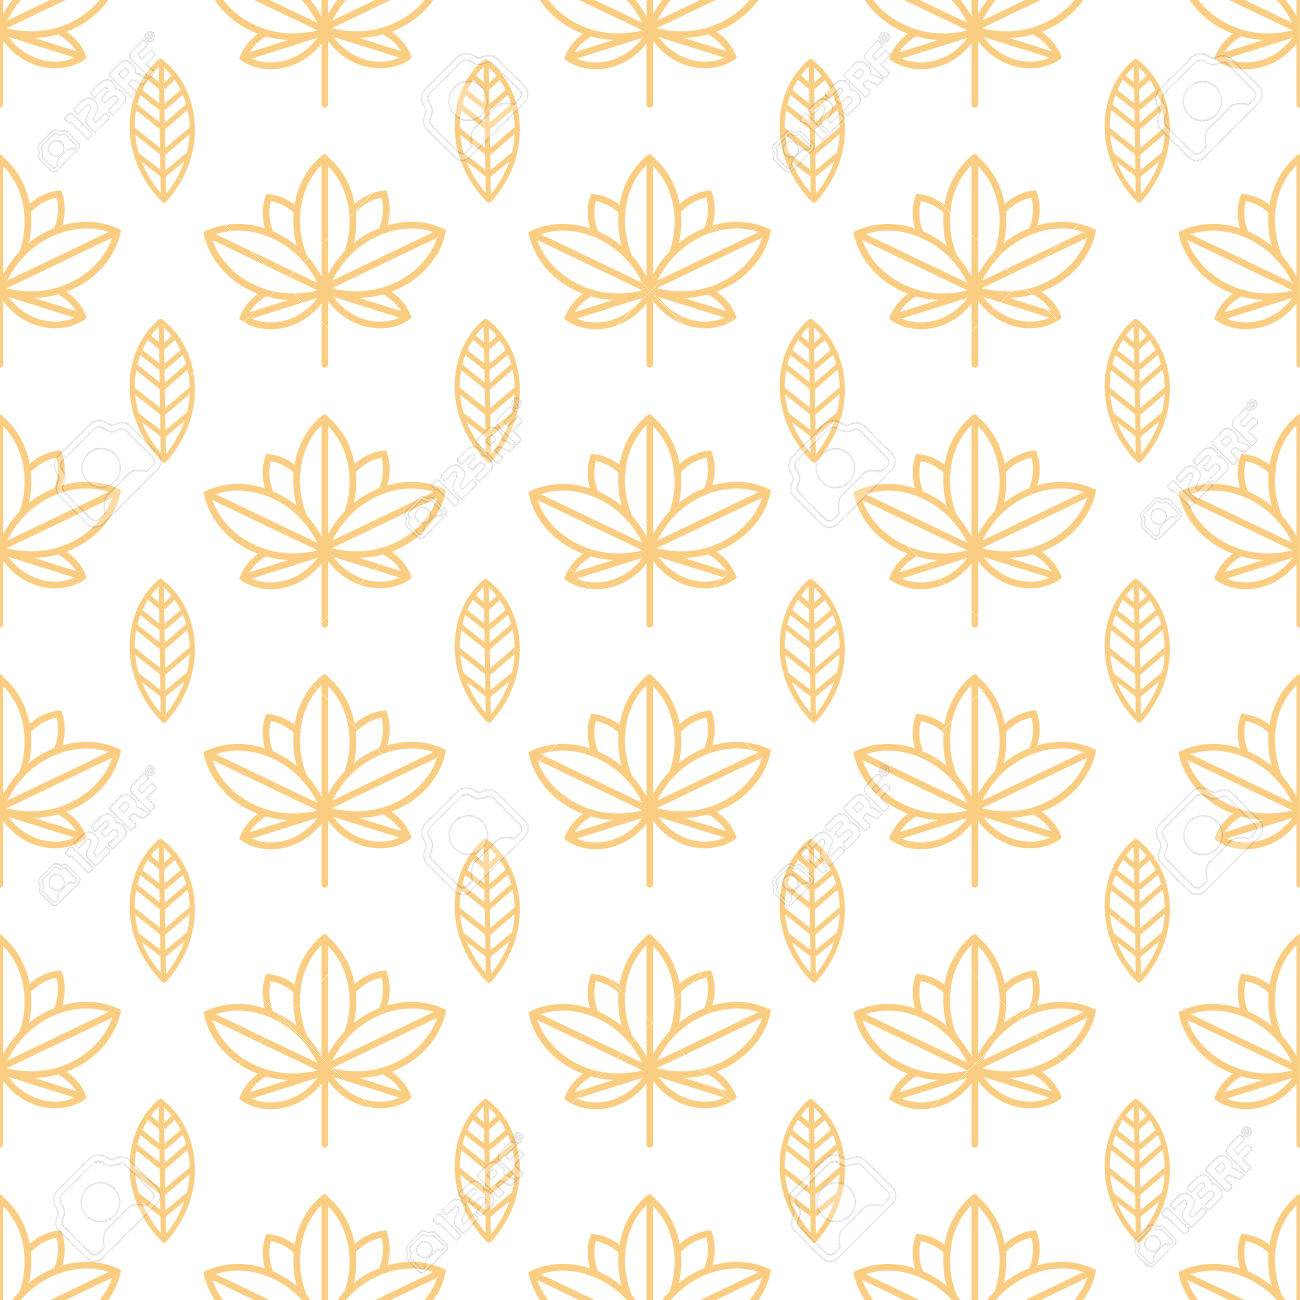 Seamless Orange Wallpaper With A Natural Pattern Of Leaves In